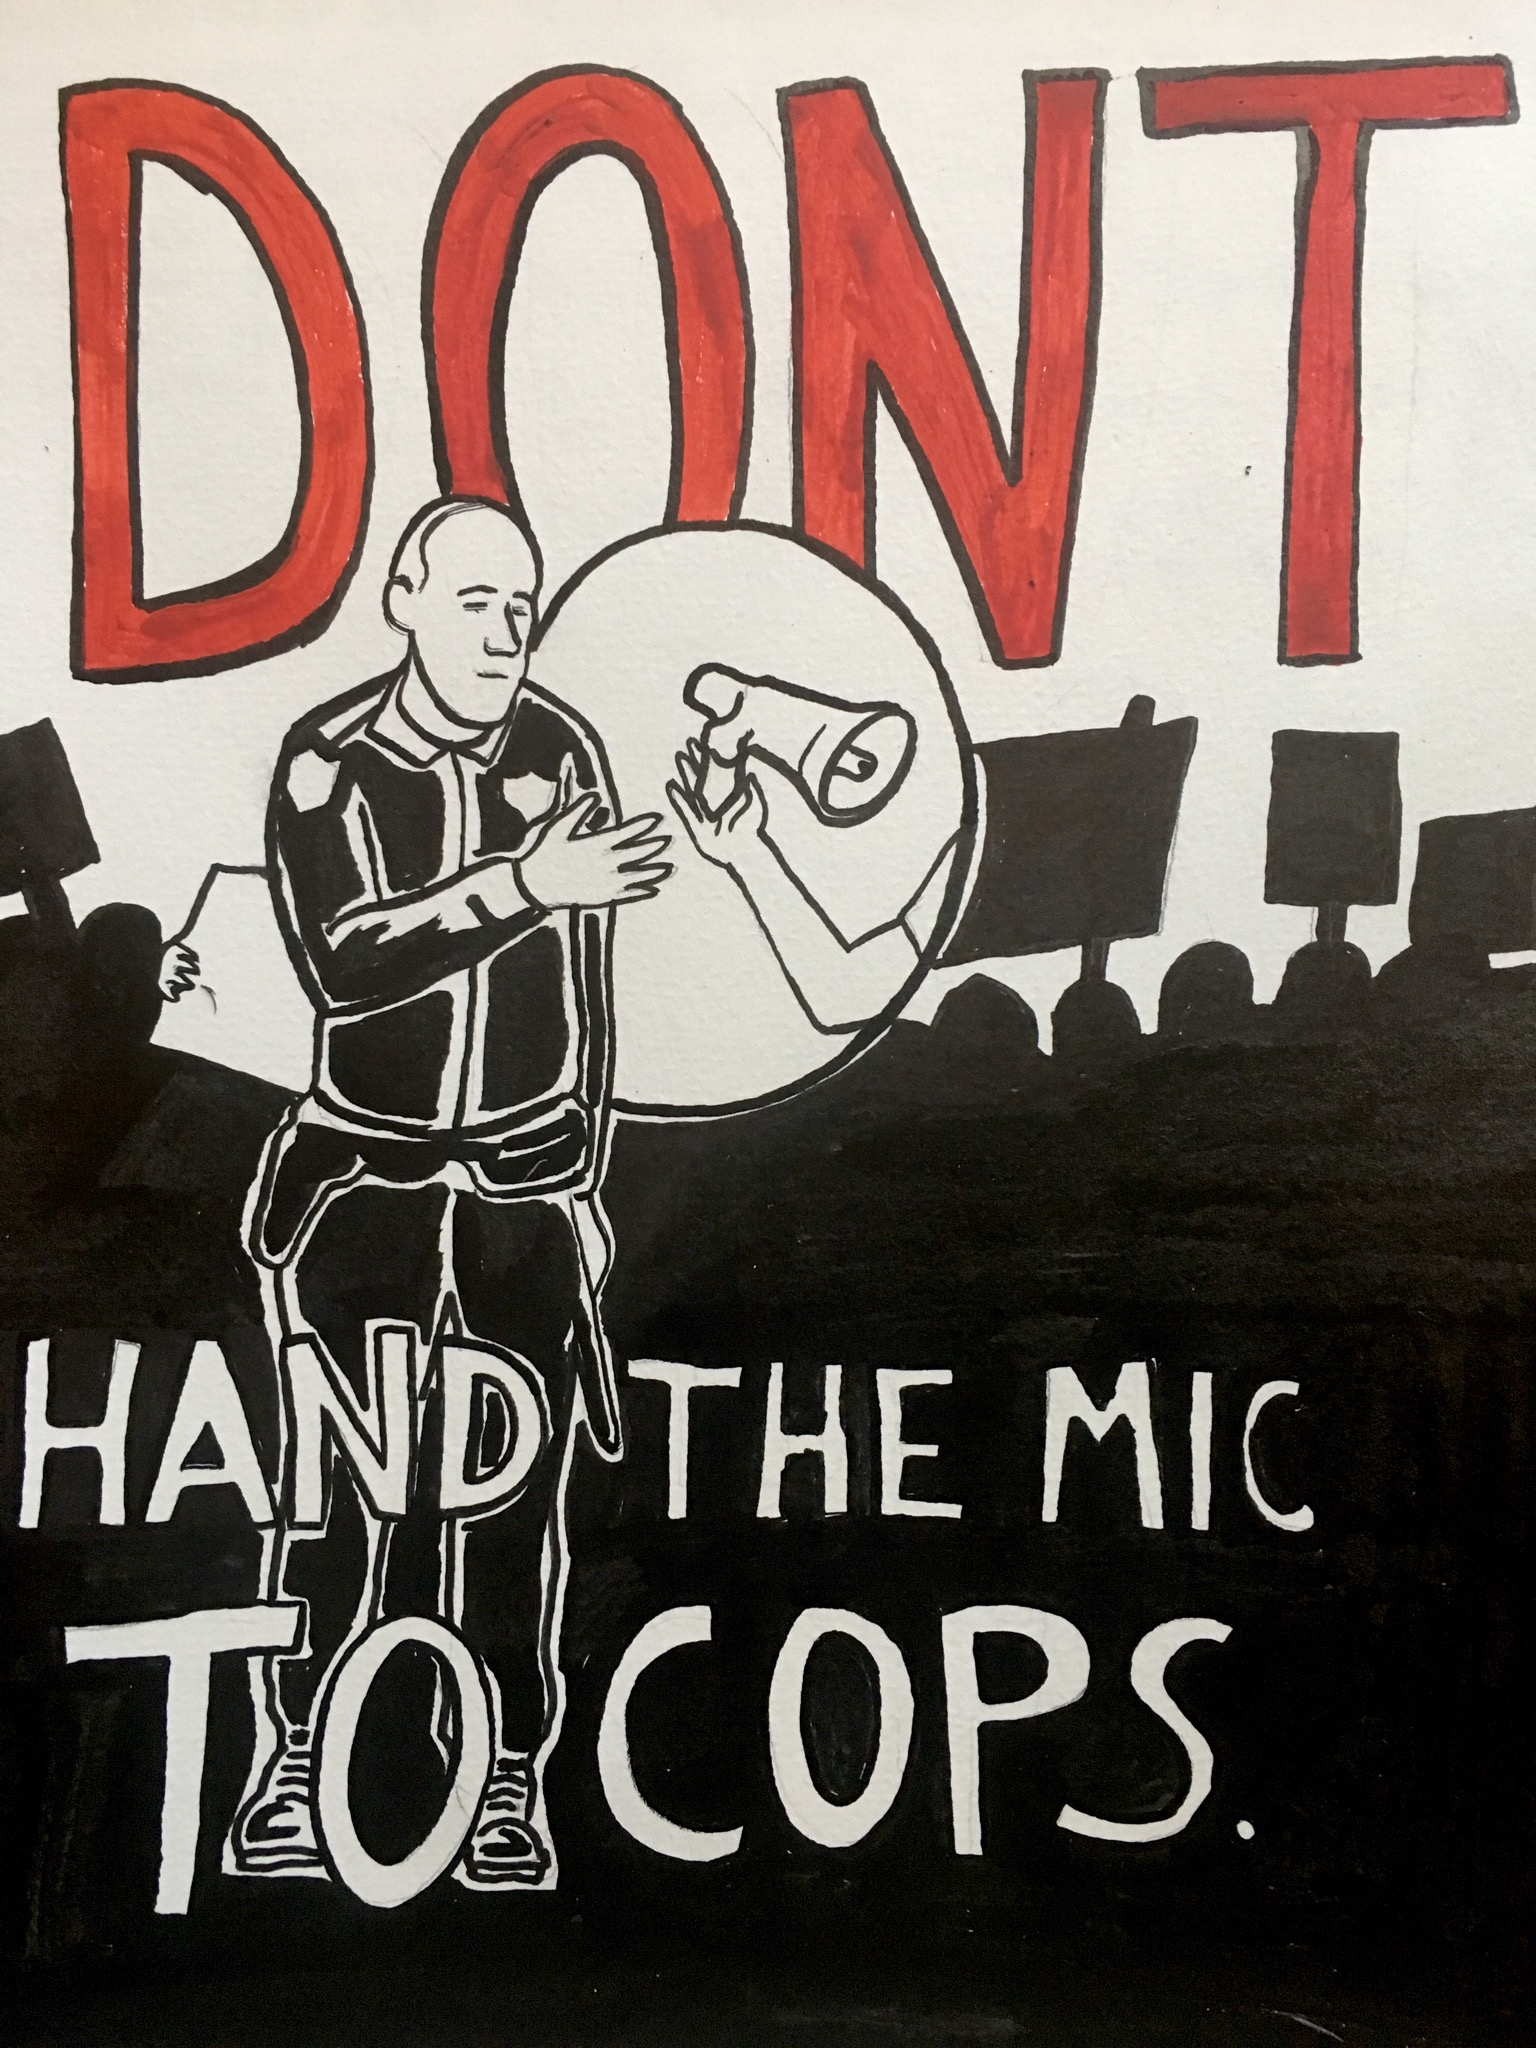 image of a cop being handed a bullhorn with the text 'don't hand the mike to cops'